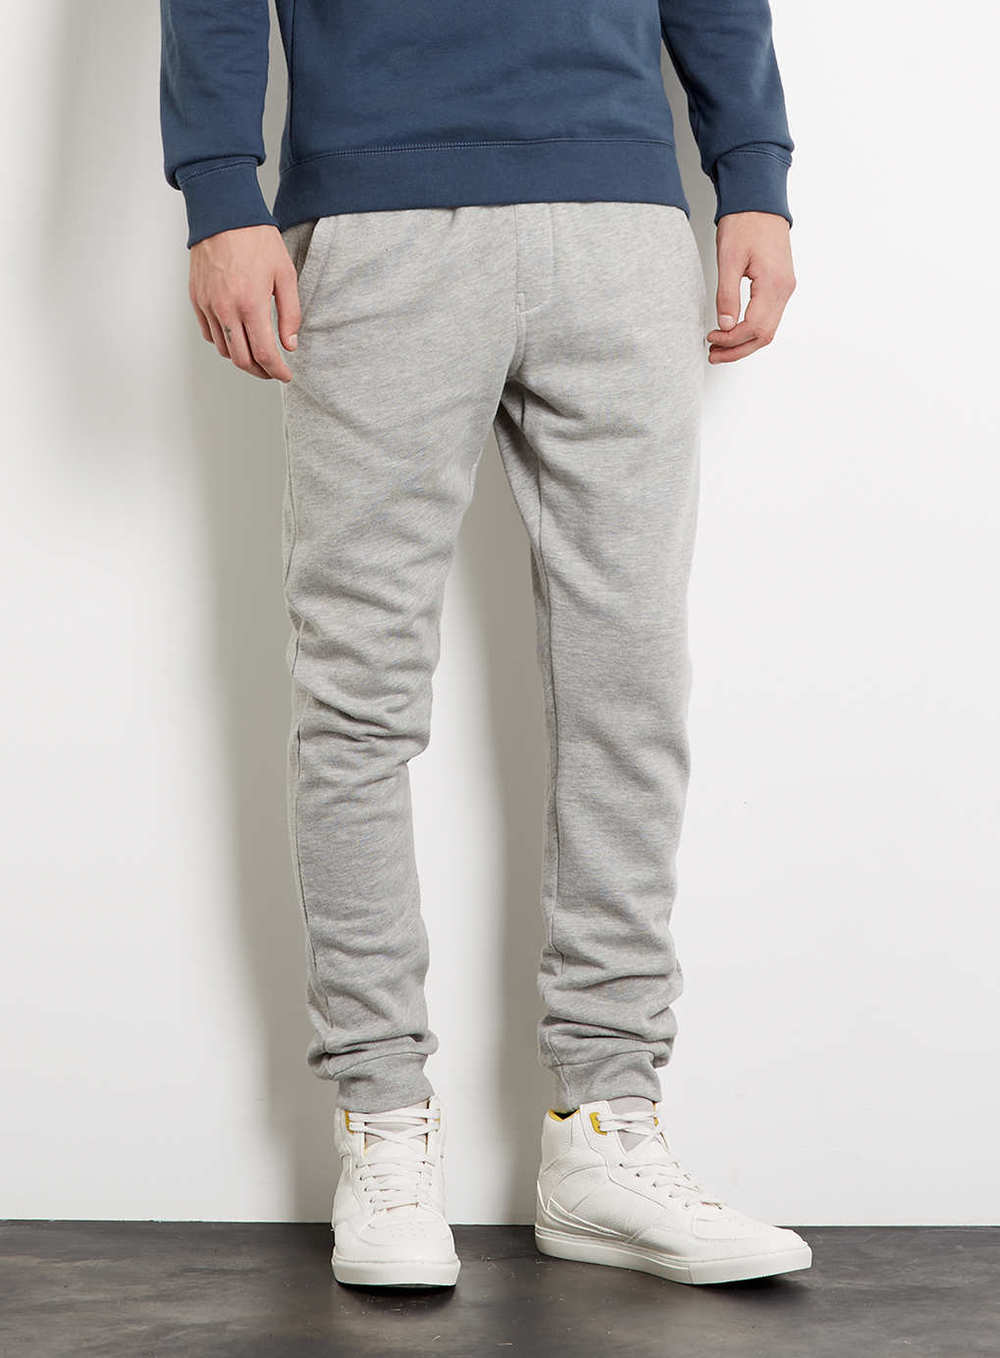 Grey Marl Skinny Sweatpants, $40